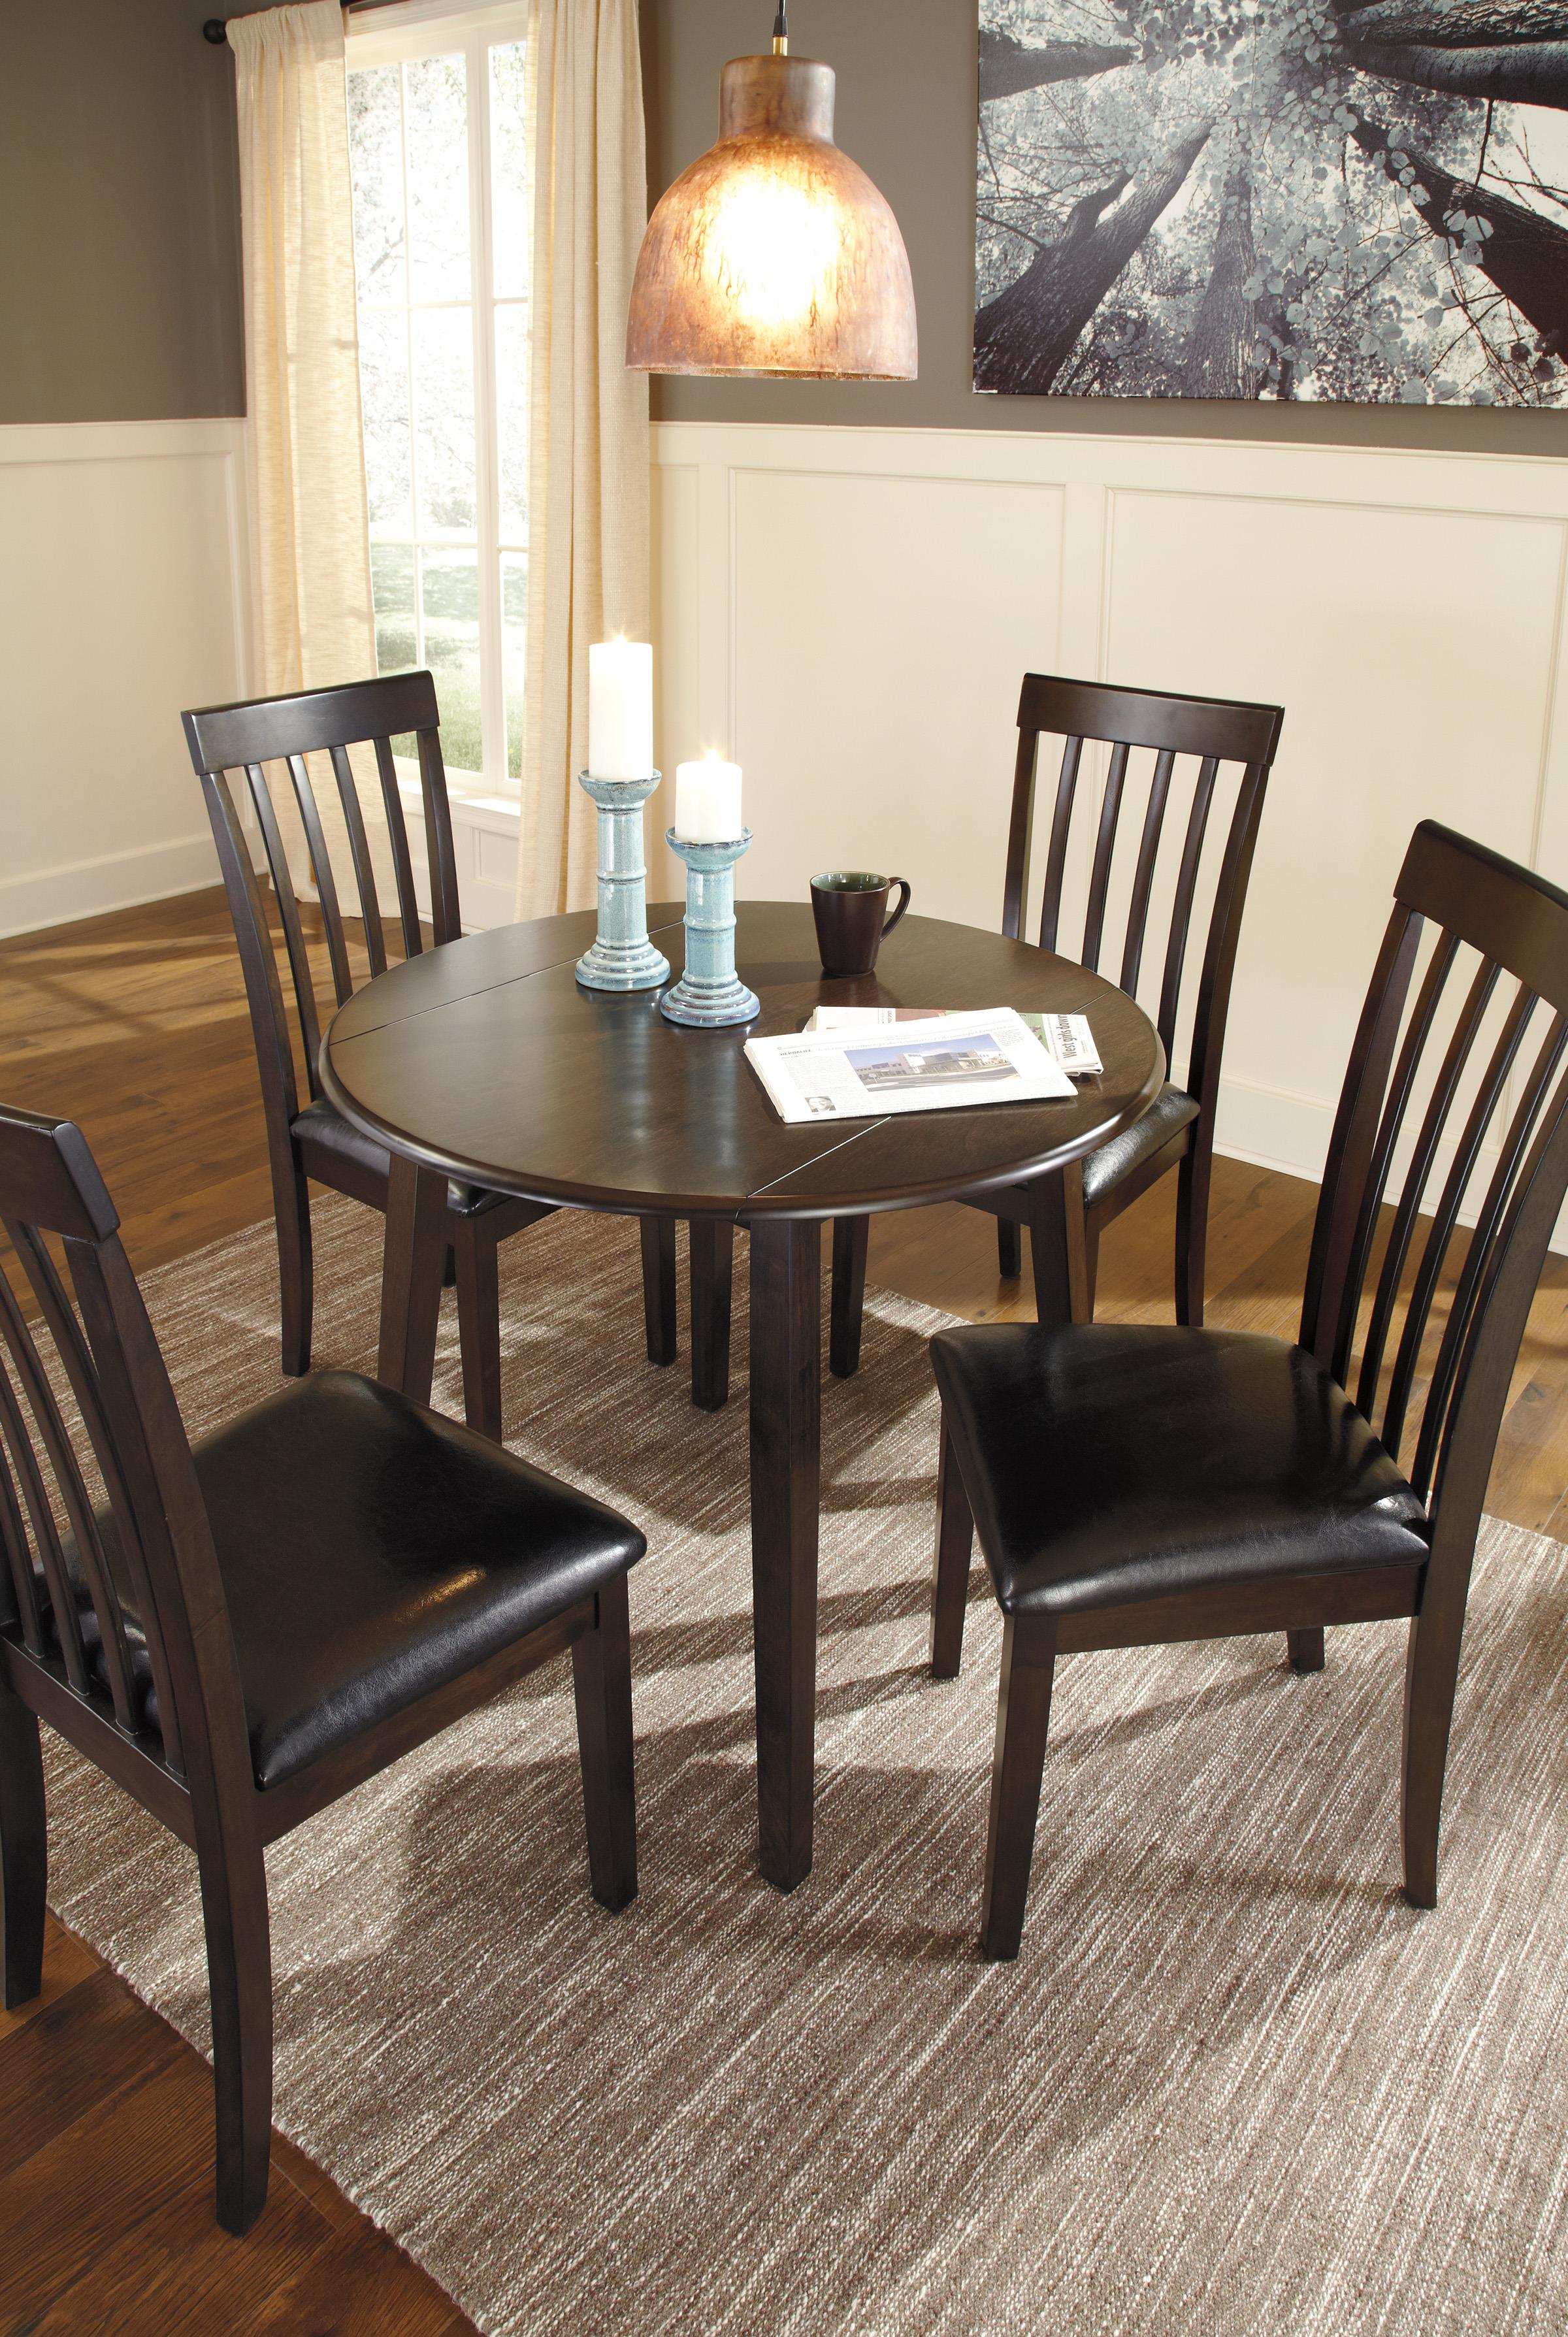 5-Piece Round Drop Leaf Table Set By Signature Design By Ashley